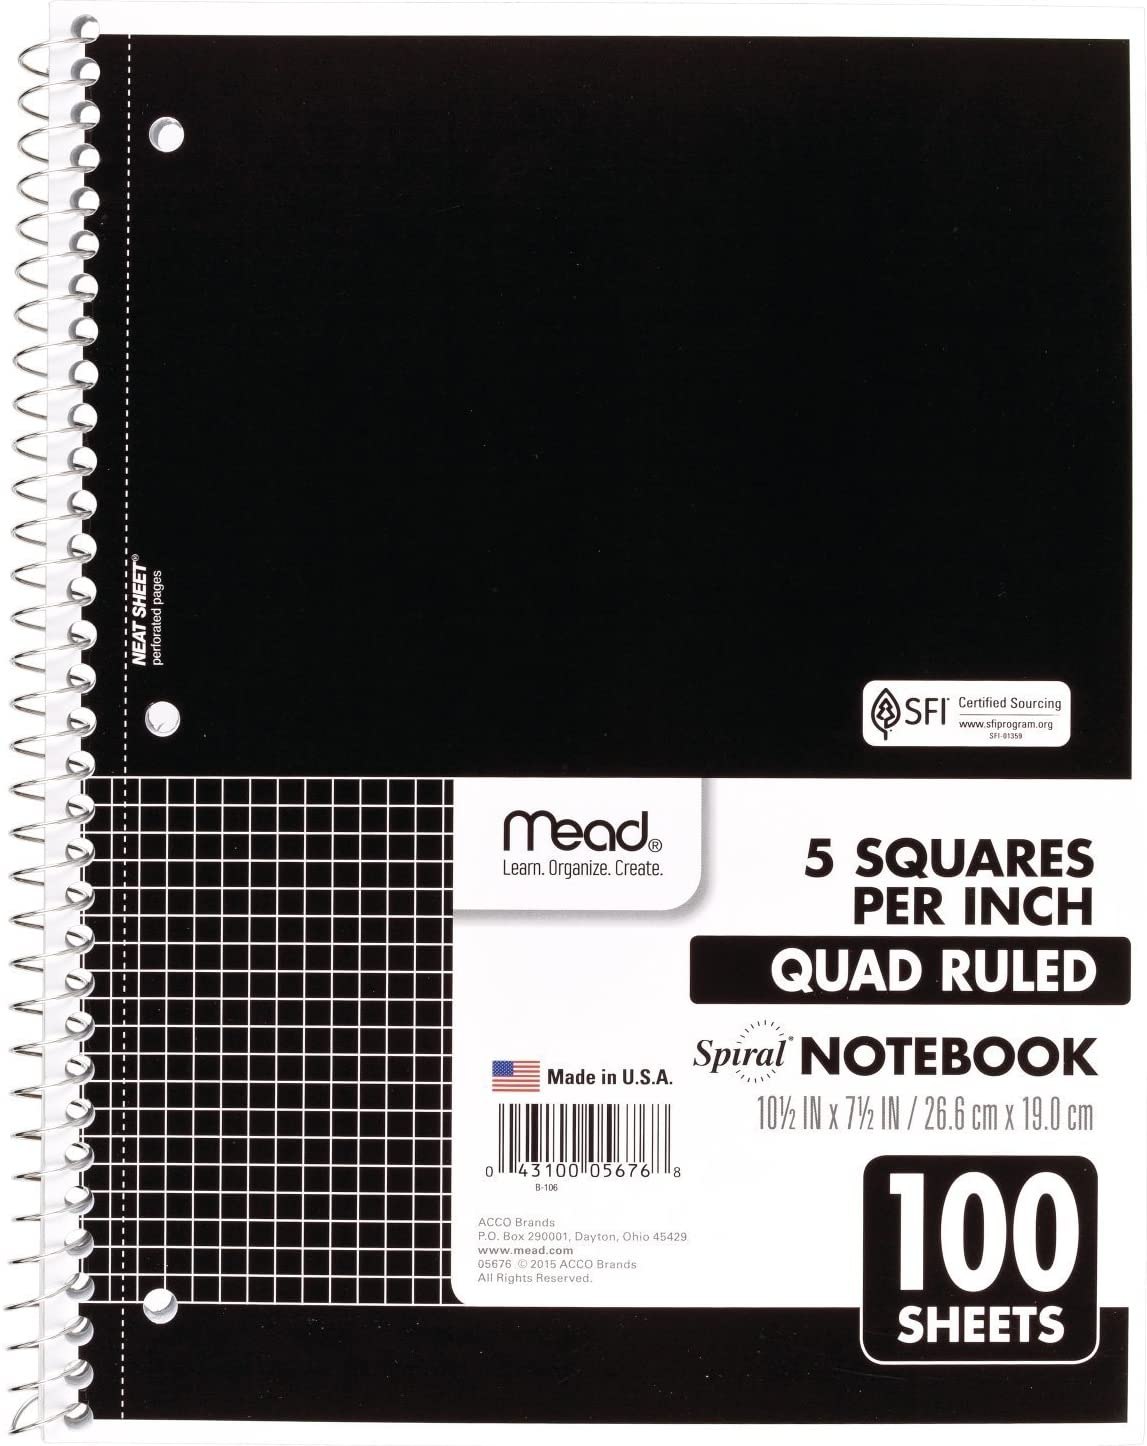 Mead Spiral Notebook, 1 Subject, Quad Ruled, 100 Sheets, Grid Notebook with Engineering Graph Paper, Home Office & Home School Supplies for College Students & K-12, 10-1/2